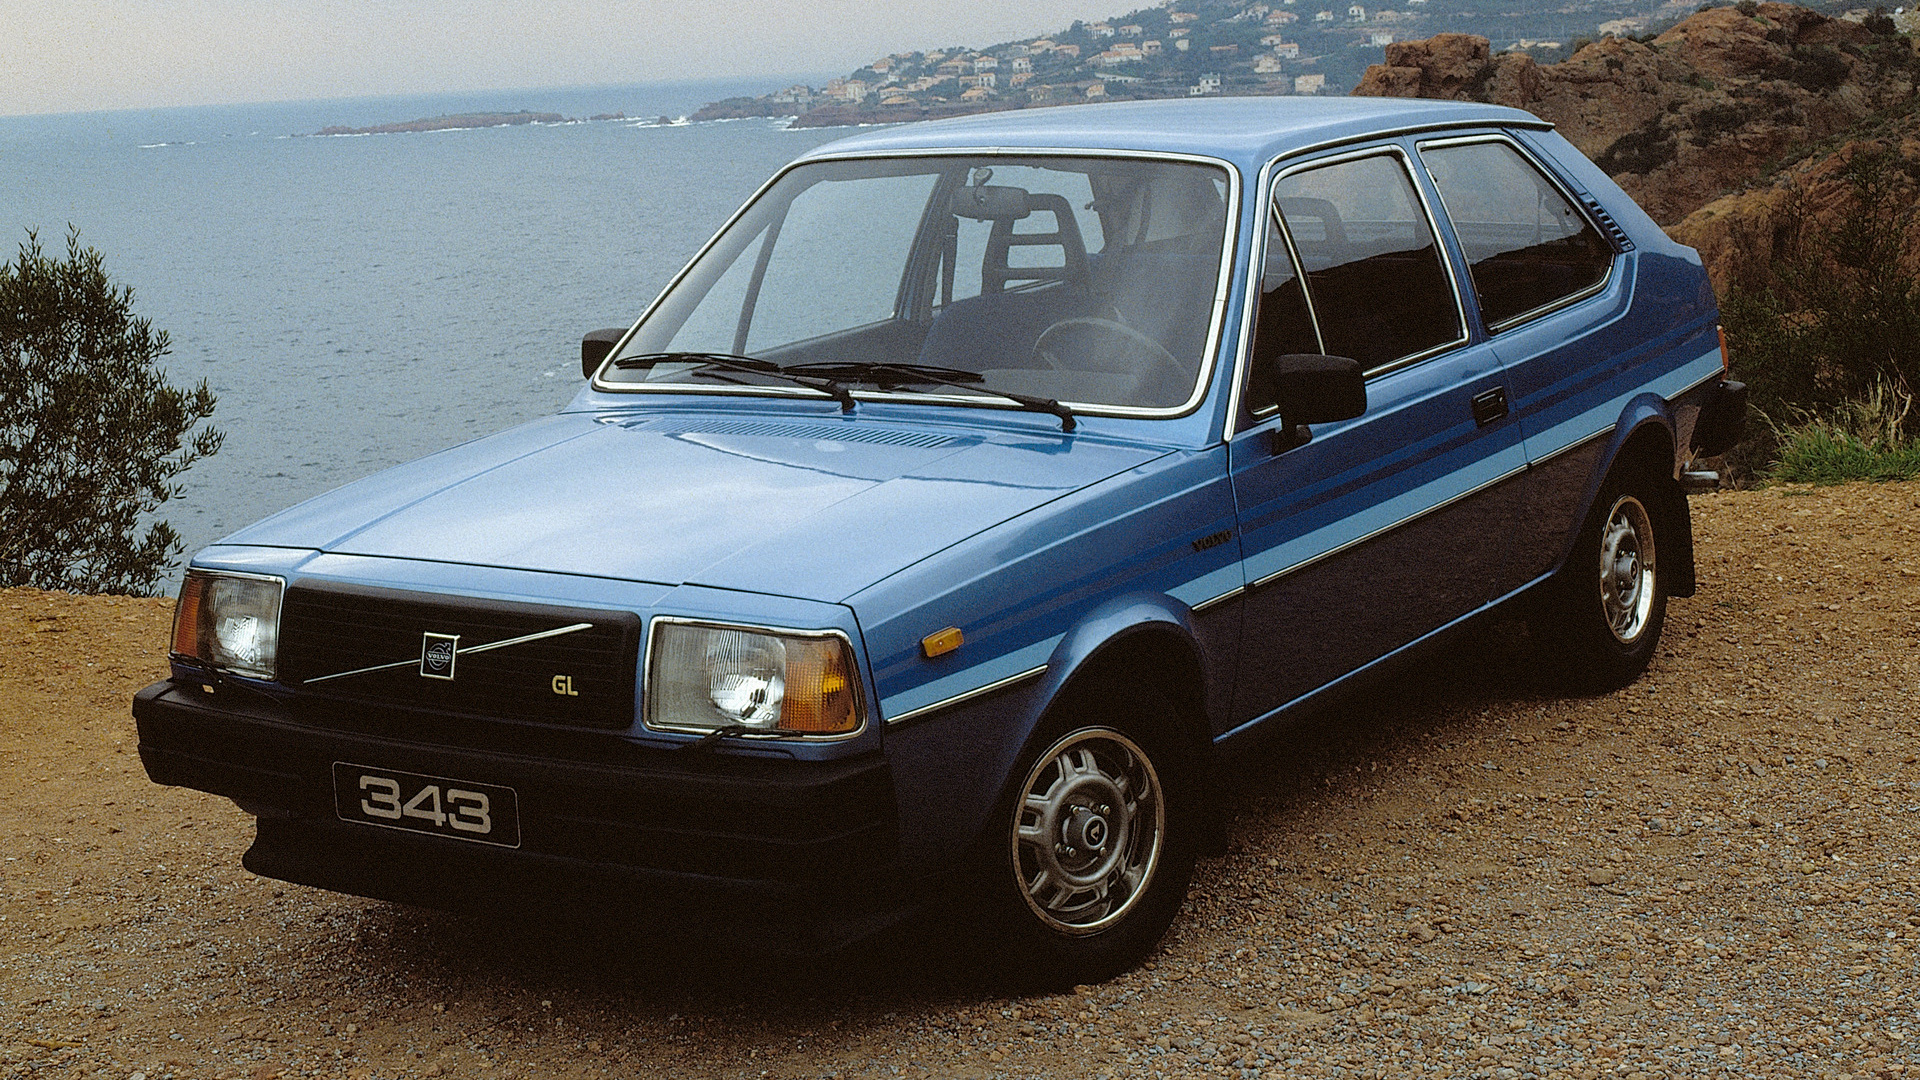 1981 Volvo 343 GL - Wallpapers and HD Images | Car Pixel